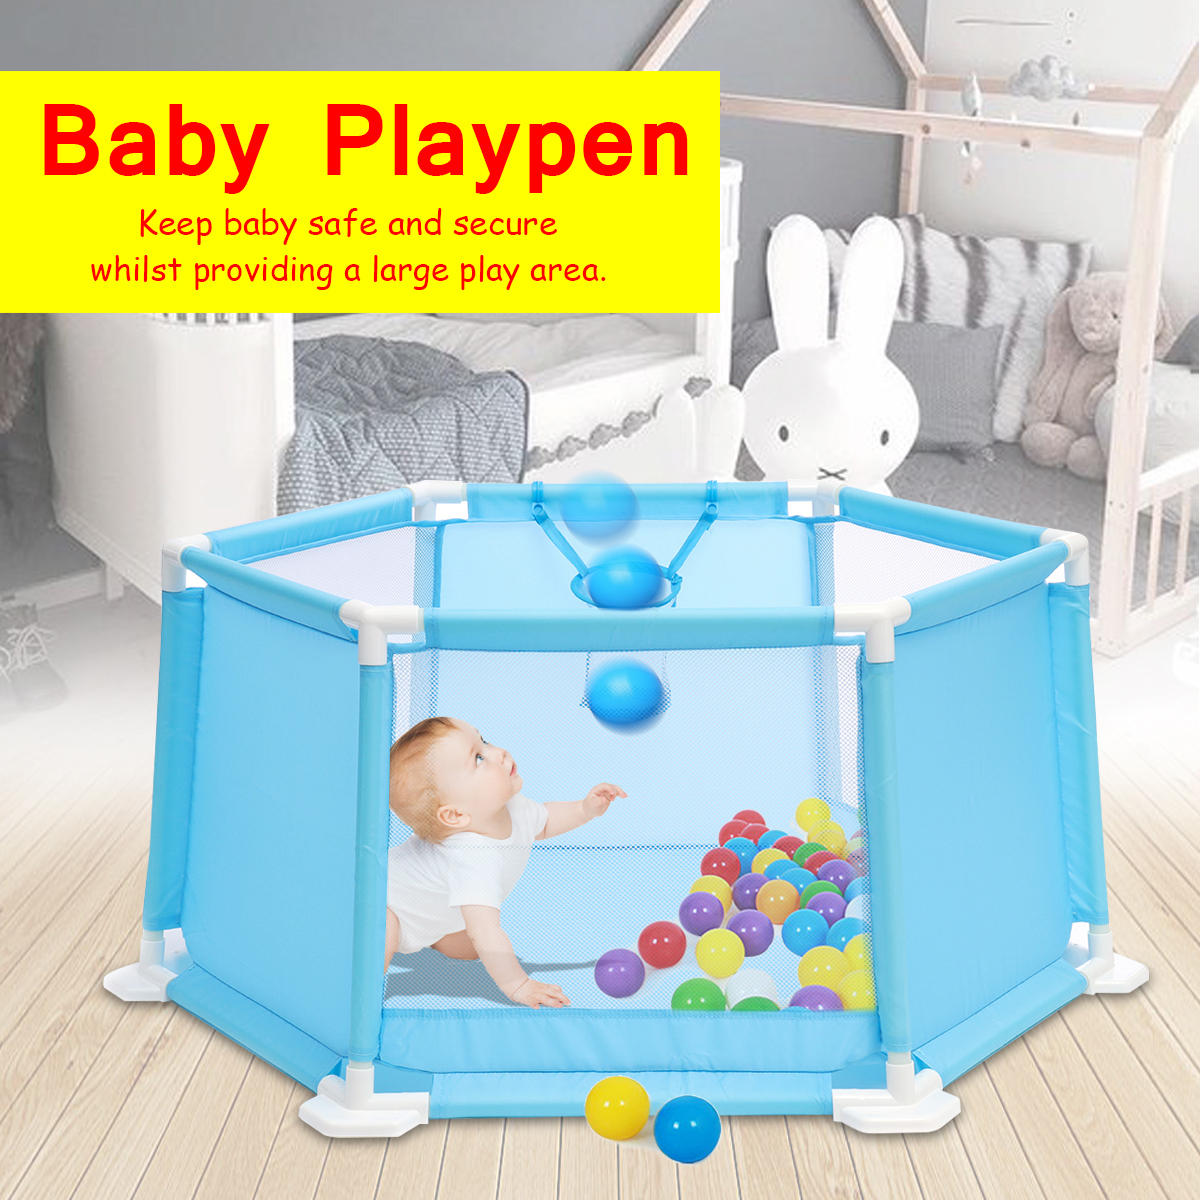 Play Center Yard Fence+50Pcs Balls Baby Playpen Kids 6 Panel Safety Protection 110x49x51cm Integrated Rubberised Feet Convenient